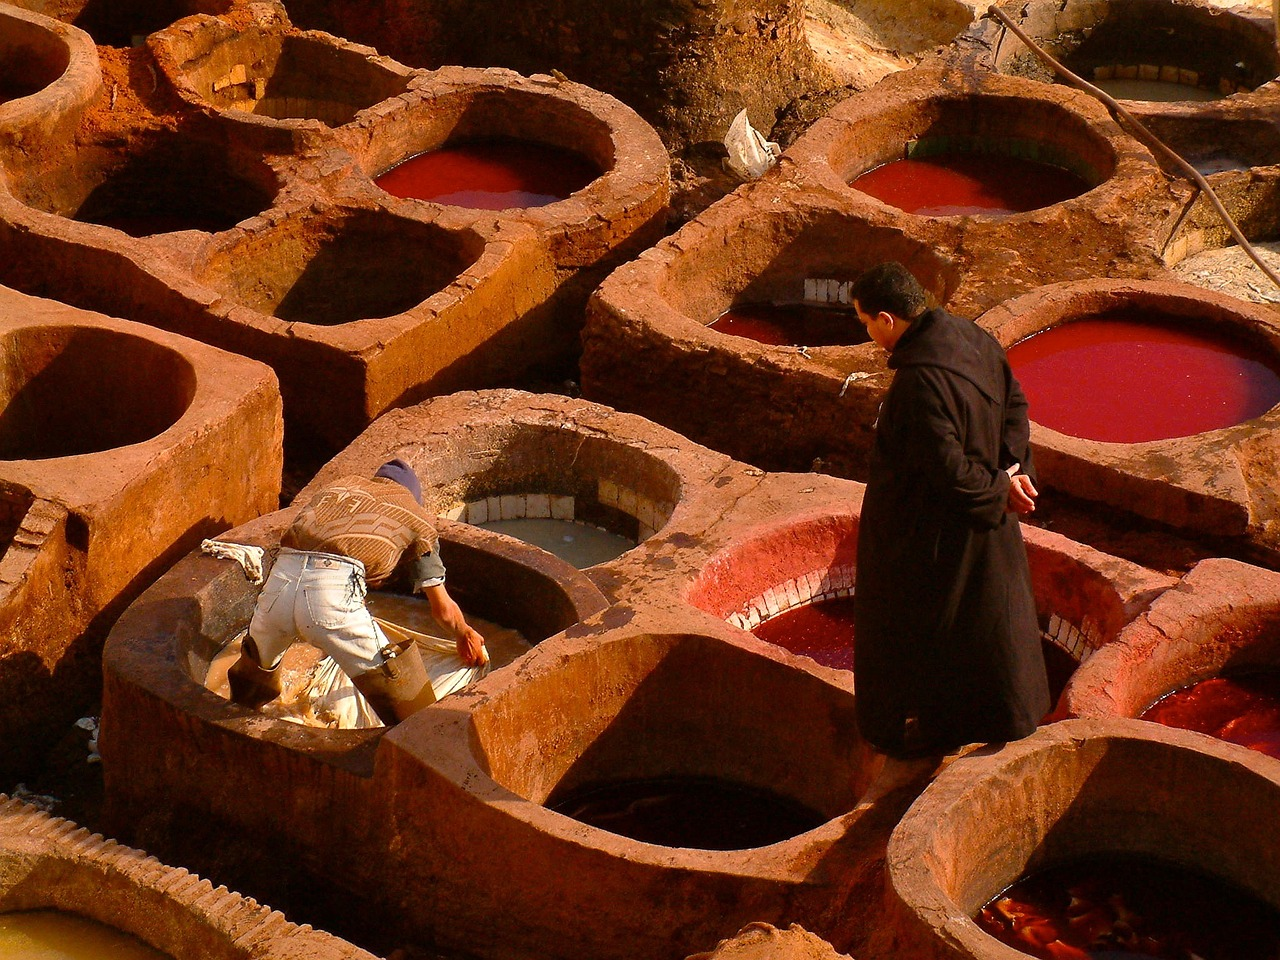 Moroccan leather tanners in Fez. Creative Commons image.